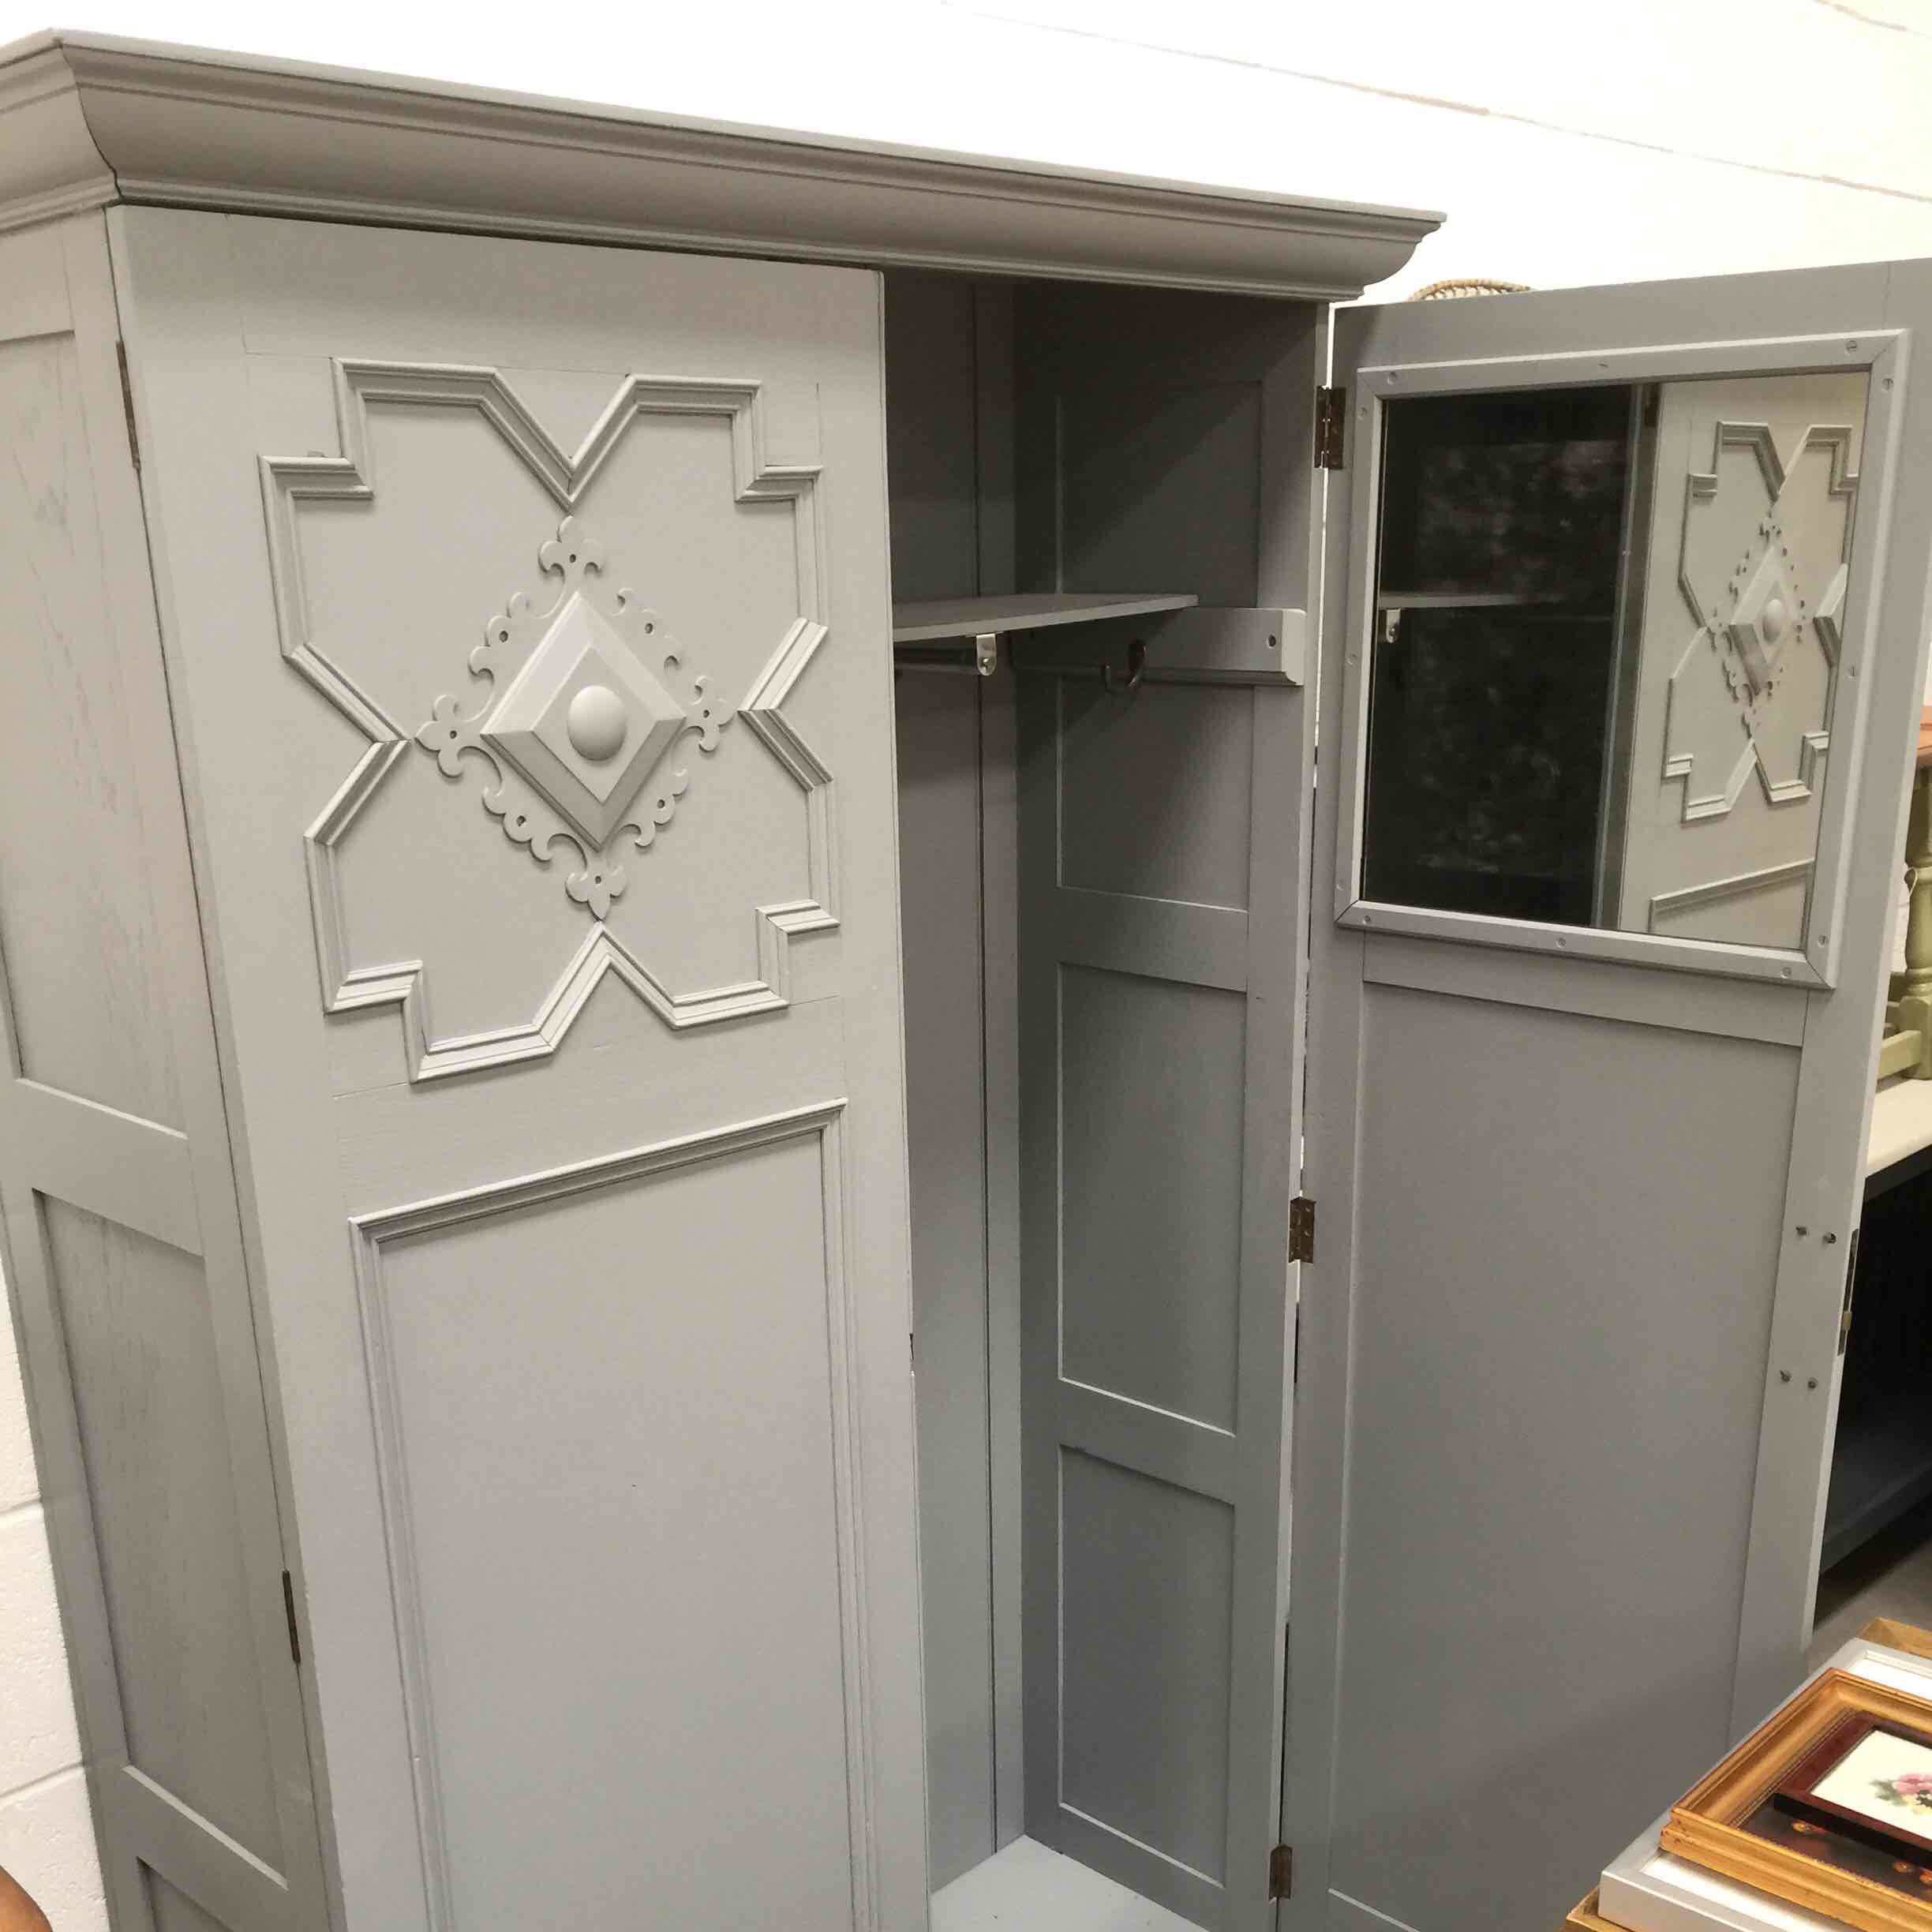 washed oak style soft interior grey our montreaux bentley home triple wardrobe montreux designs